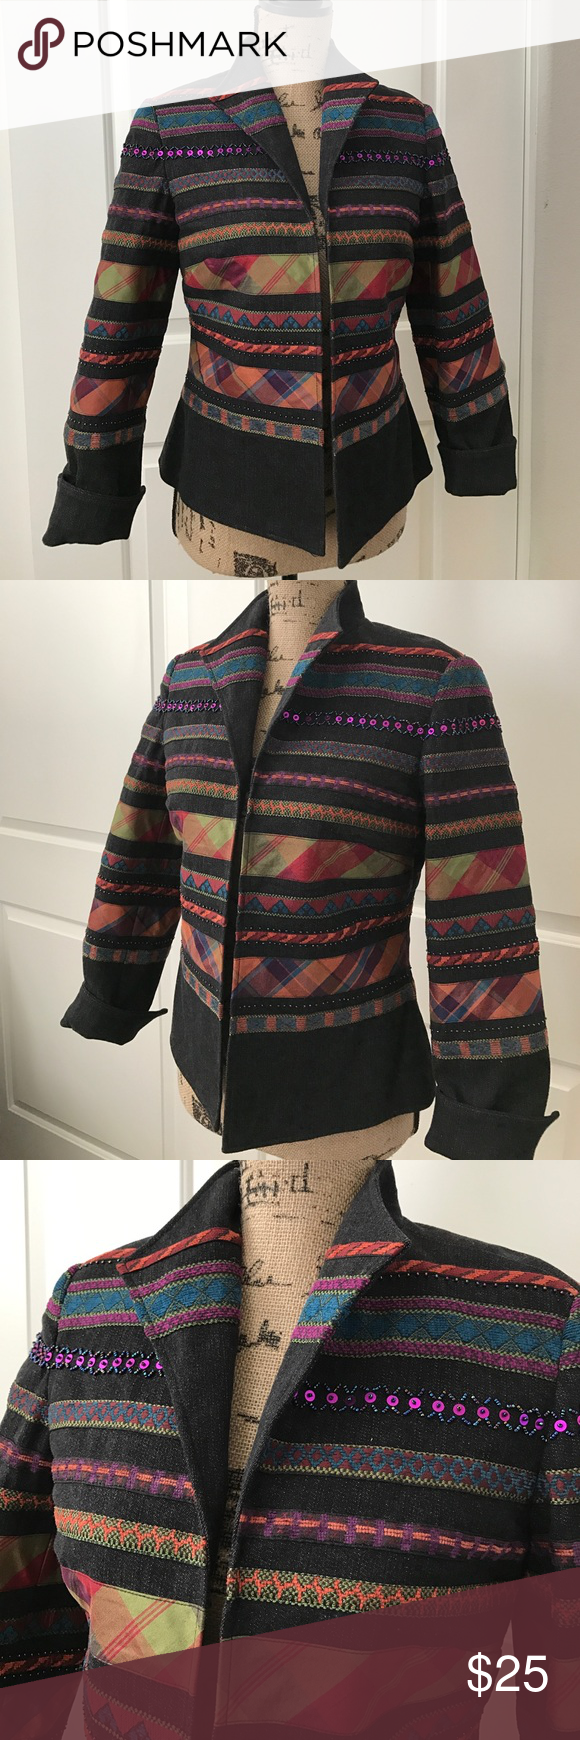 COLDWATER CREEK Dark denim boho jacket BRAND NEW NEVER WORN. NO TAGS. Beautiful black denim boho jacket. Features beautiful embroidered fabric stripes with sequins and beading throughout. Cuffed sleeves. Open front. It is fully lined. Fabric is 98% cotton 2% spandex. It is a size petite 4. Coldwater Creek Jackets & Coats